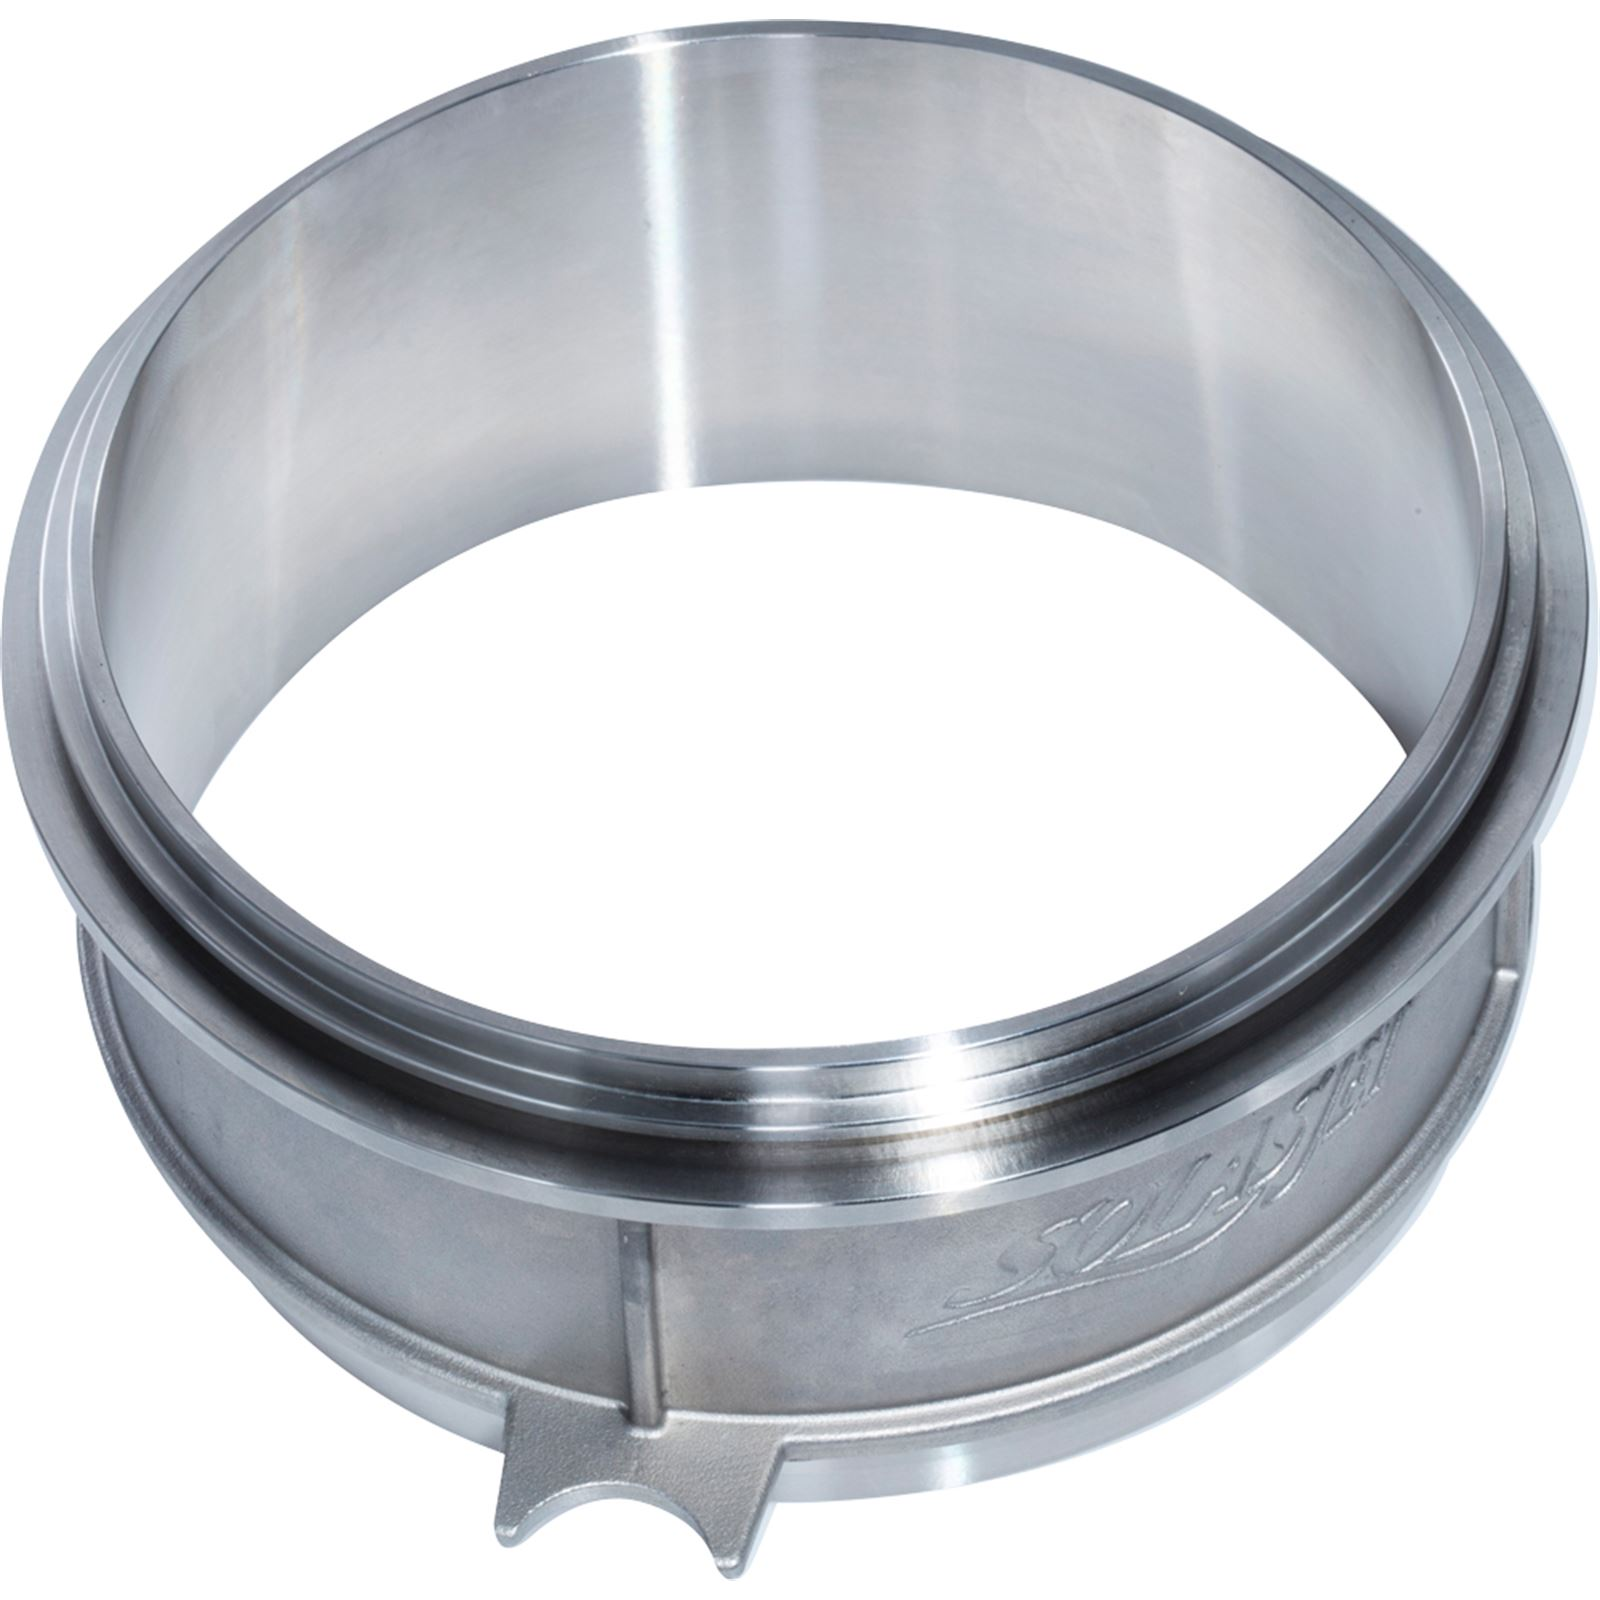 Solas Stainless Wear Ring